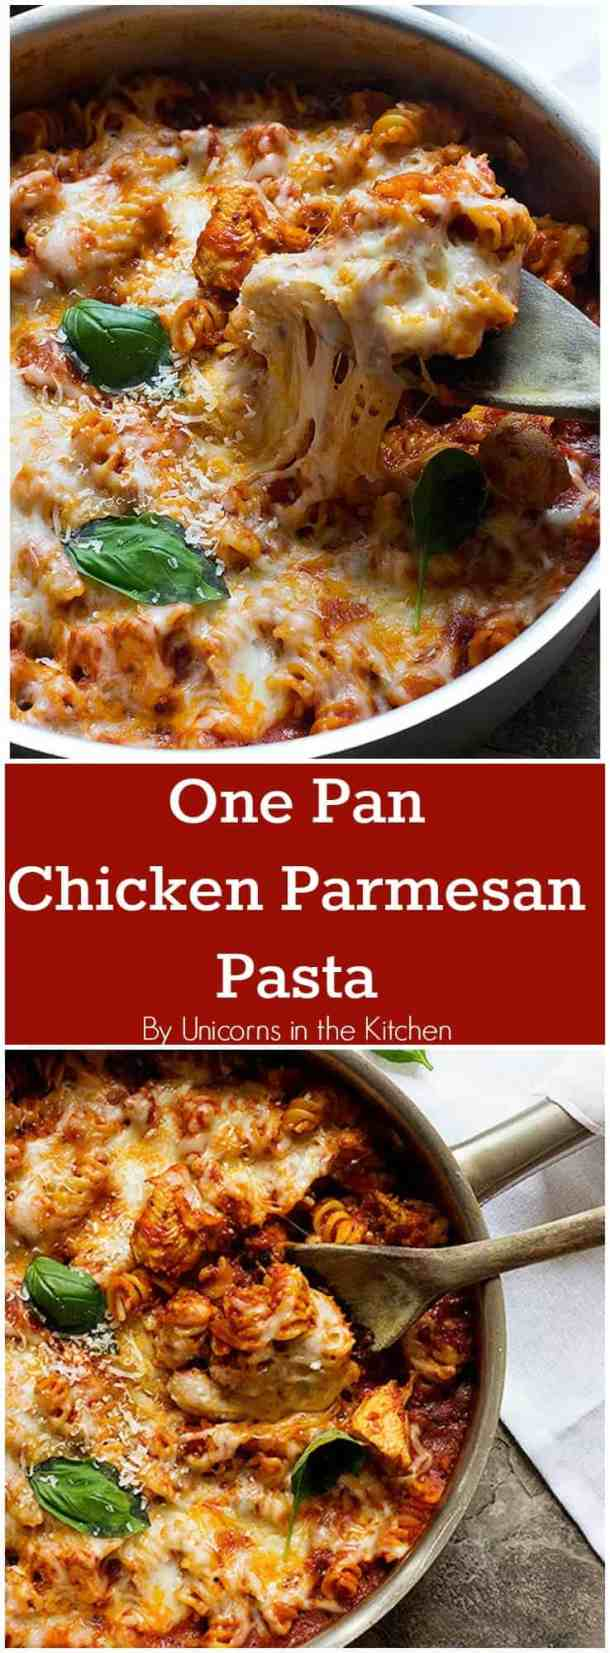 A healthier version of an all-time favorite, this One Pan Chicken Parmesan Pasta is great for weeknight dinners and is ready in less than 40 minutes!